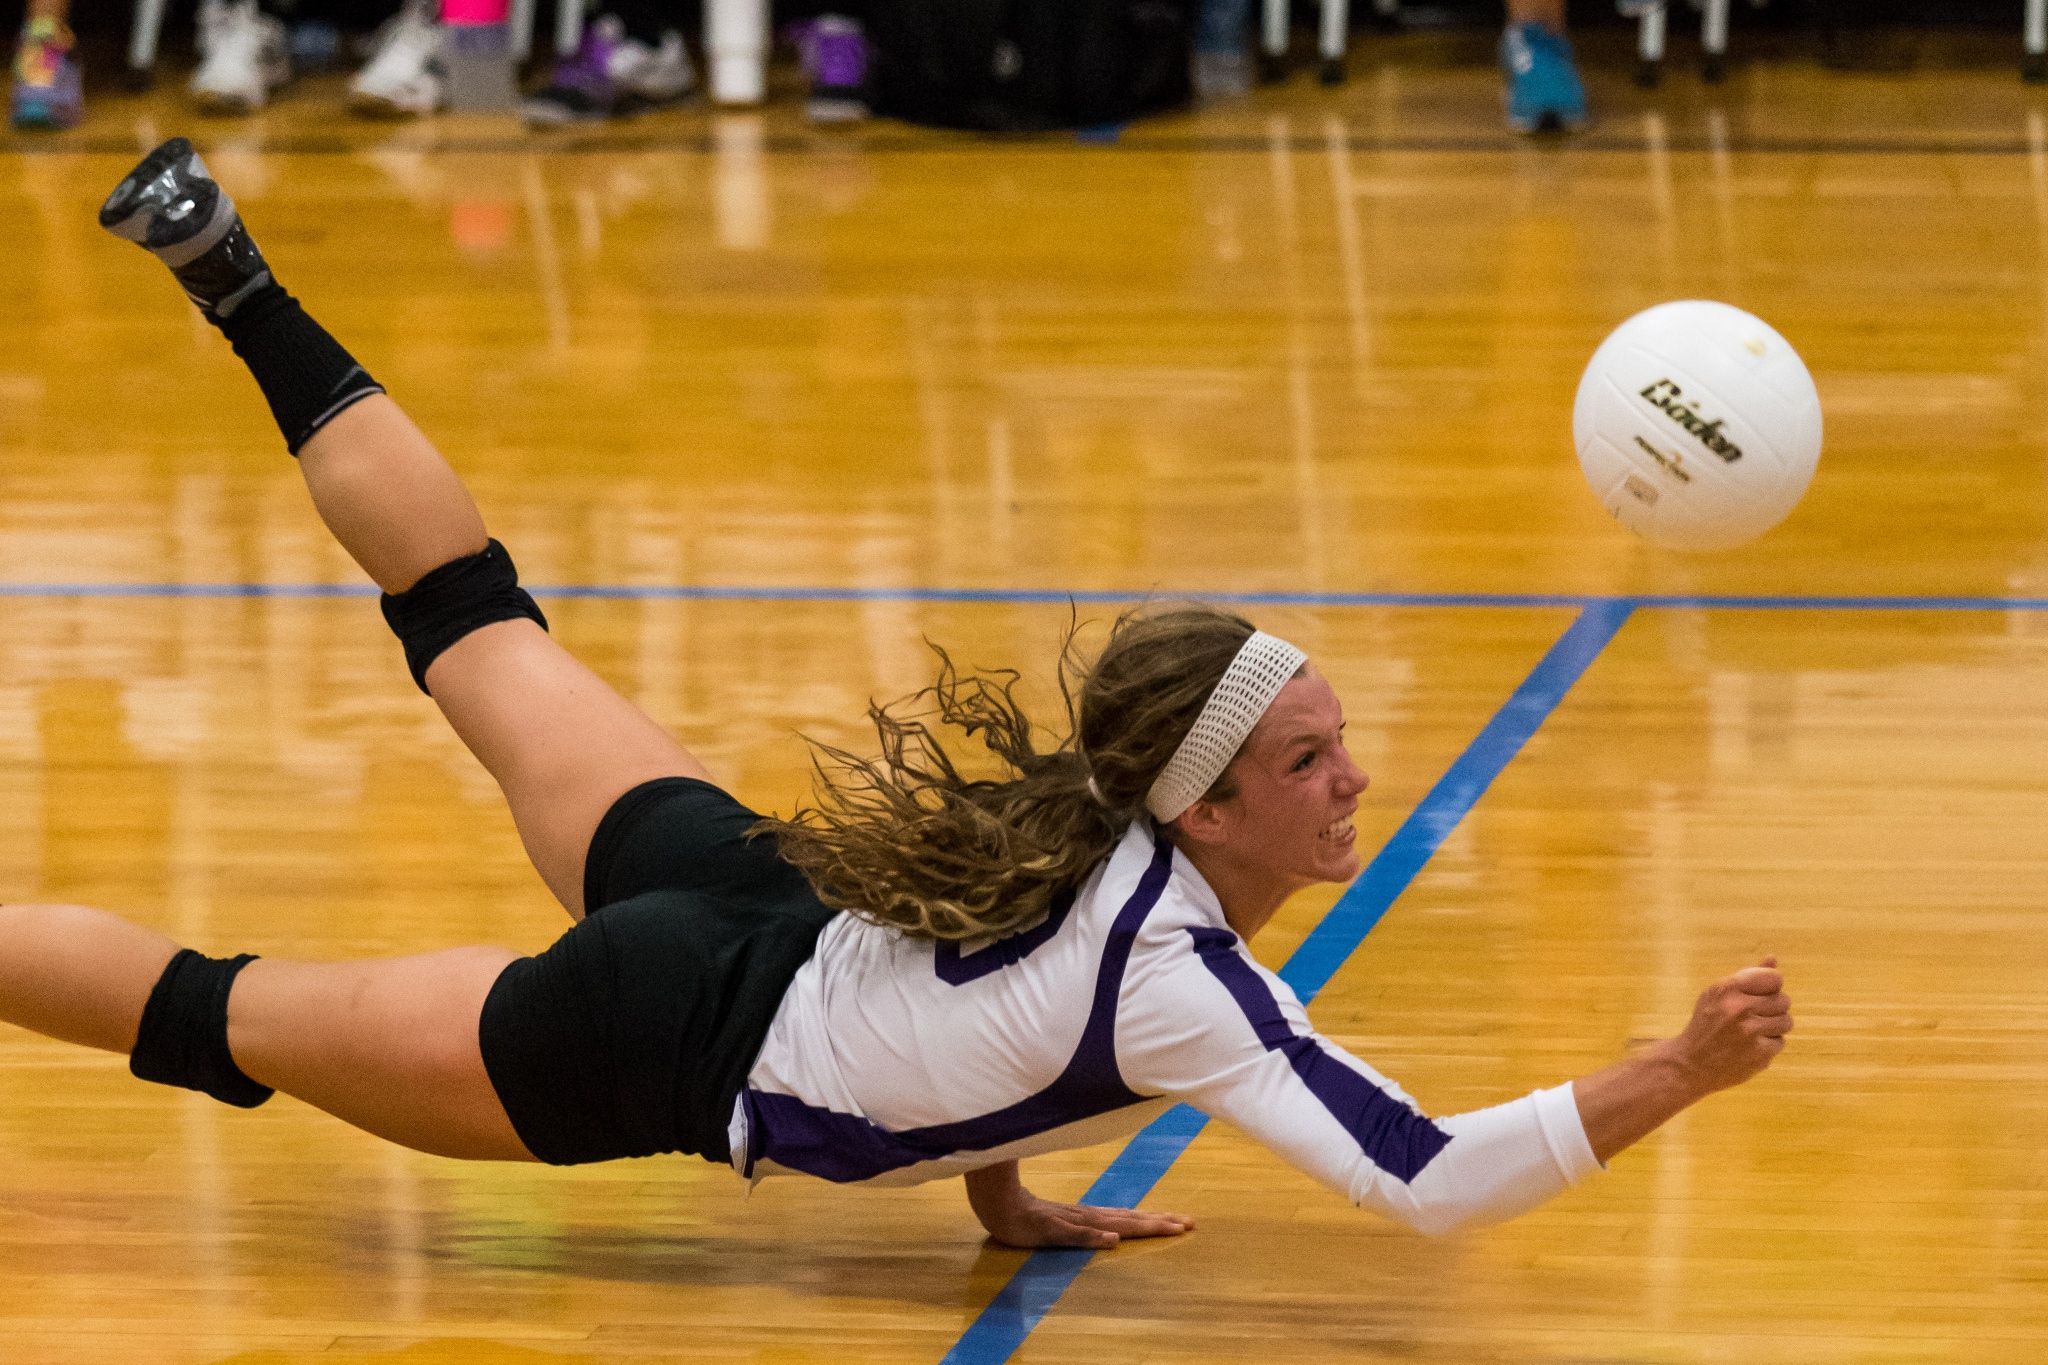 Dive Volleyball Inspiration Volleyball Photos Volleyball Poses